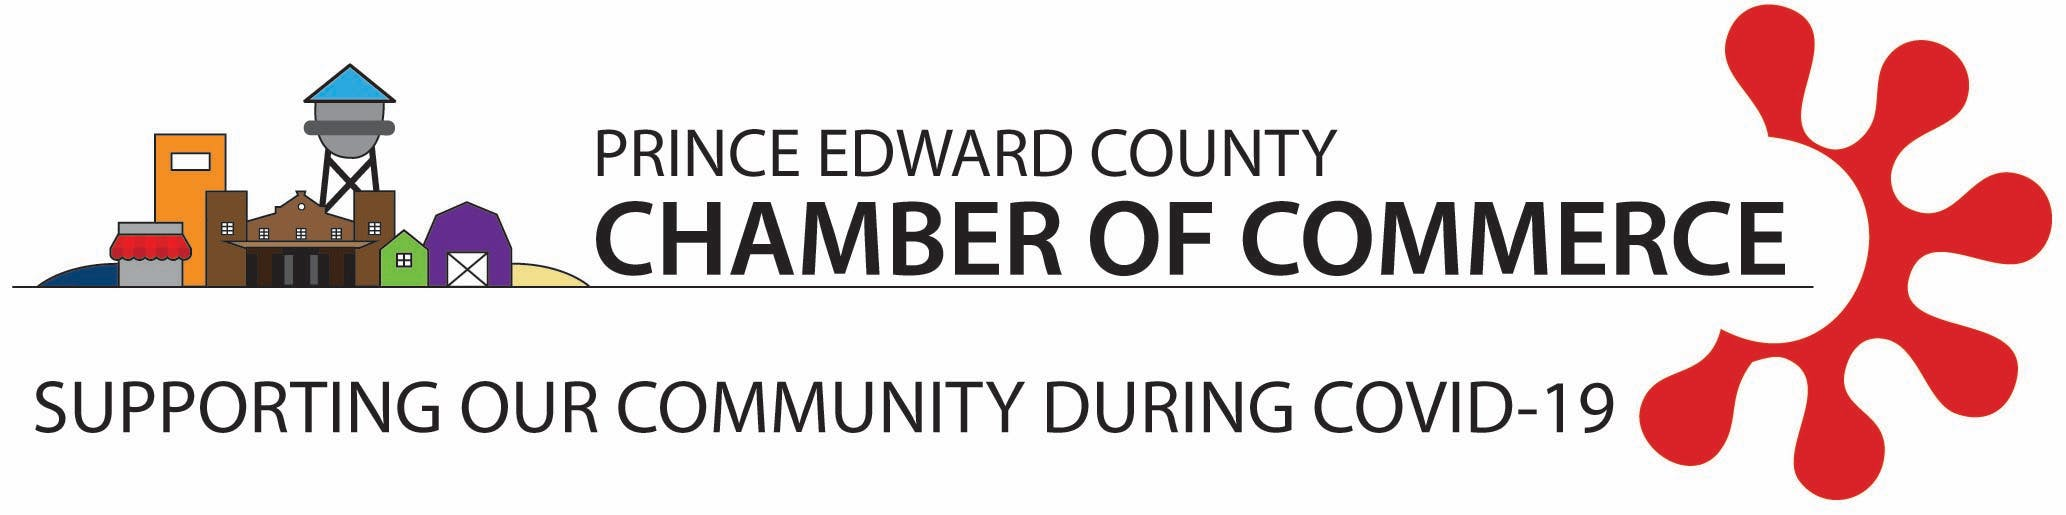 Prince Edward County Chamber of Commerce Response: Supporting our Community During Covid-19